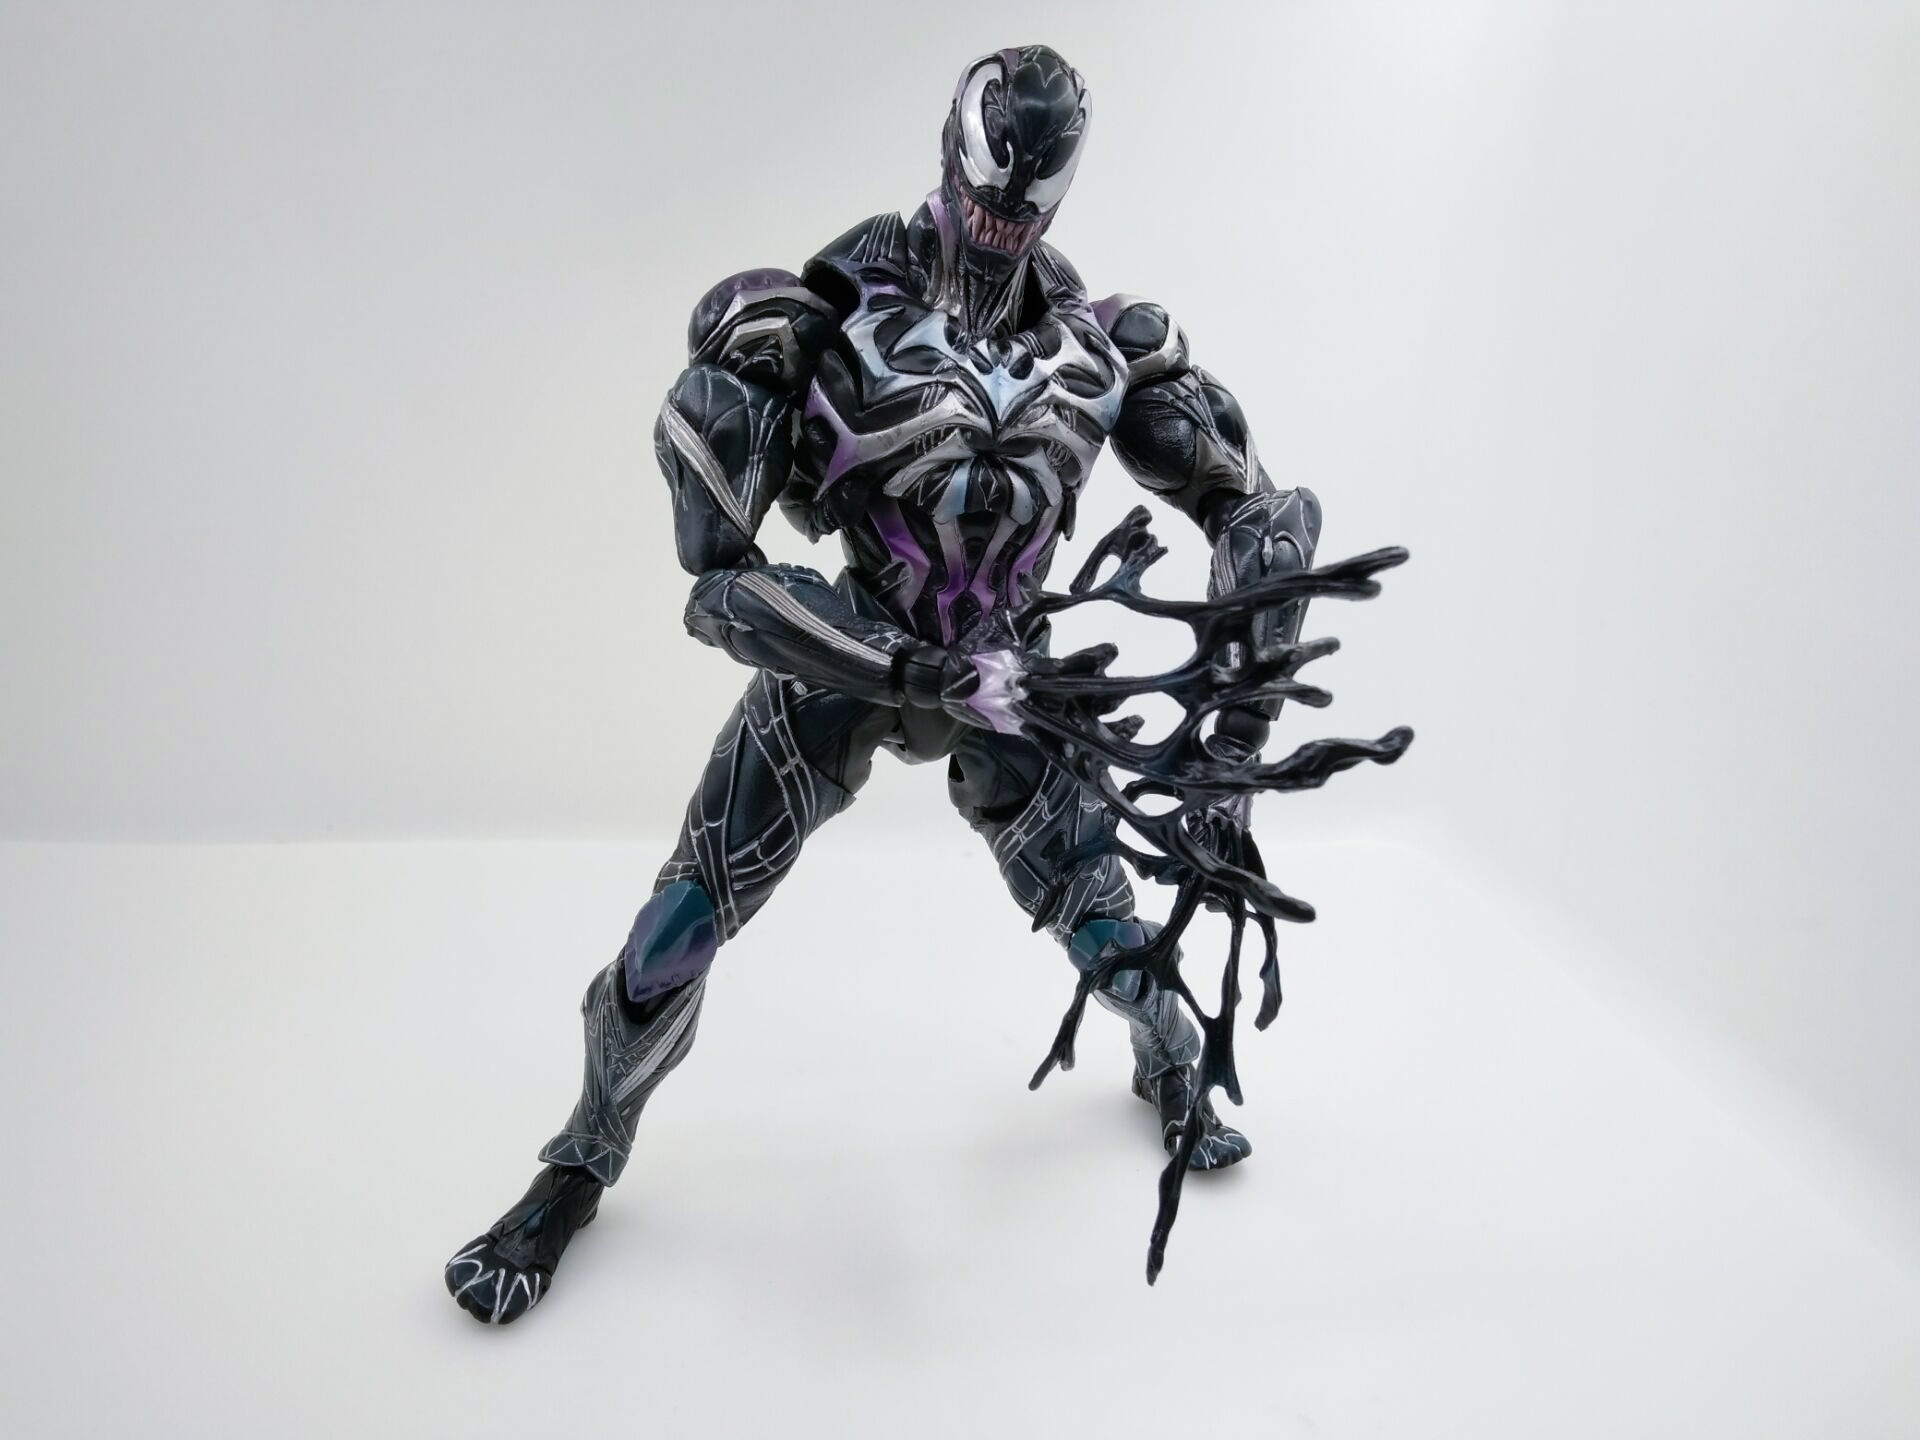 WVW 27CM Hot Sale Q Version Movie Hero Spider Man Venom Play Arts Model PVC Toy Action Figure Decoration For Collection Gift cartoon fight hero star model desktop decoration gift